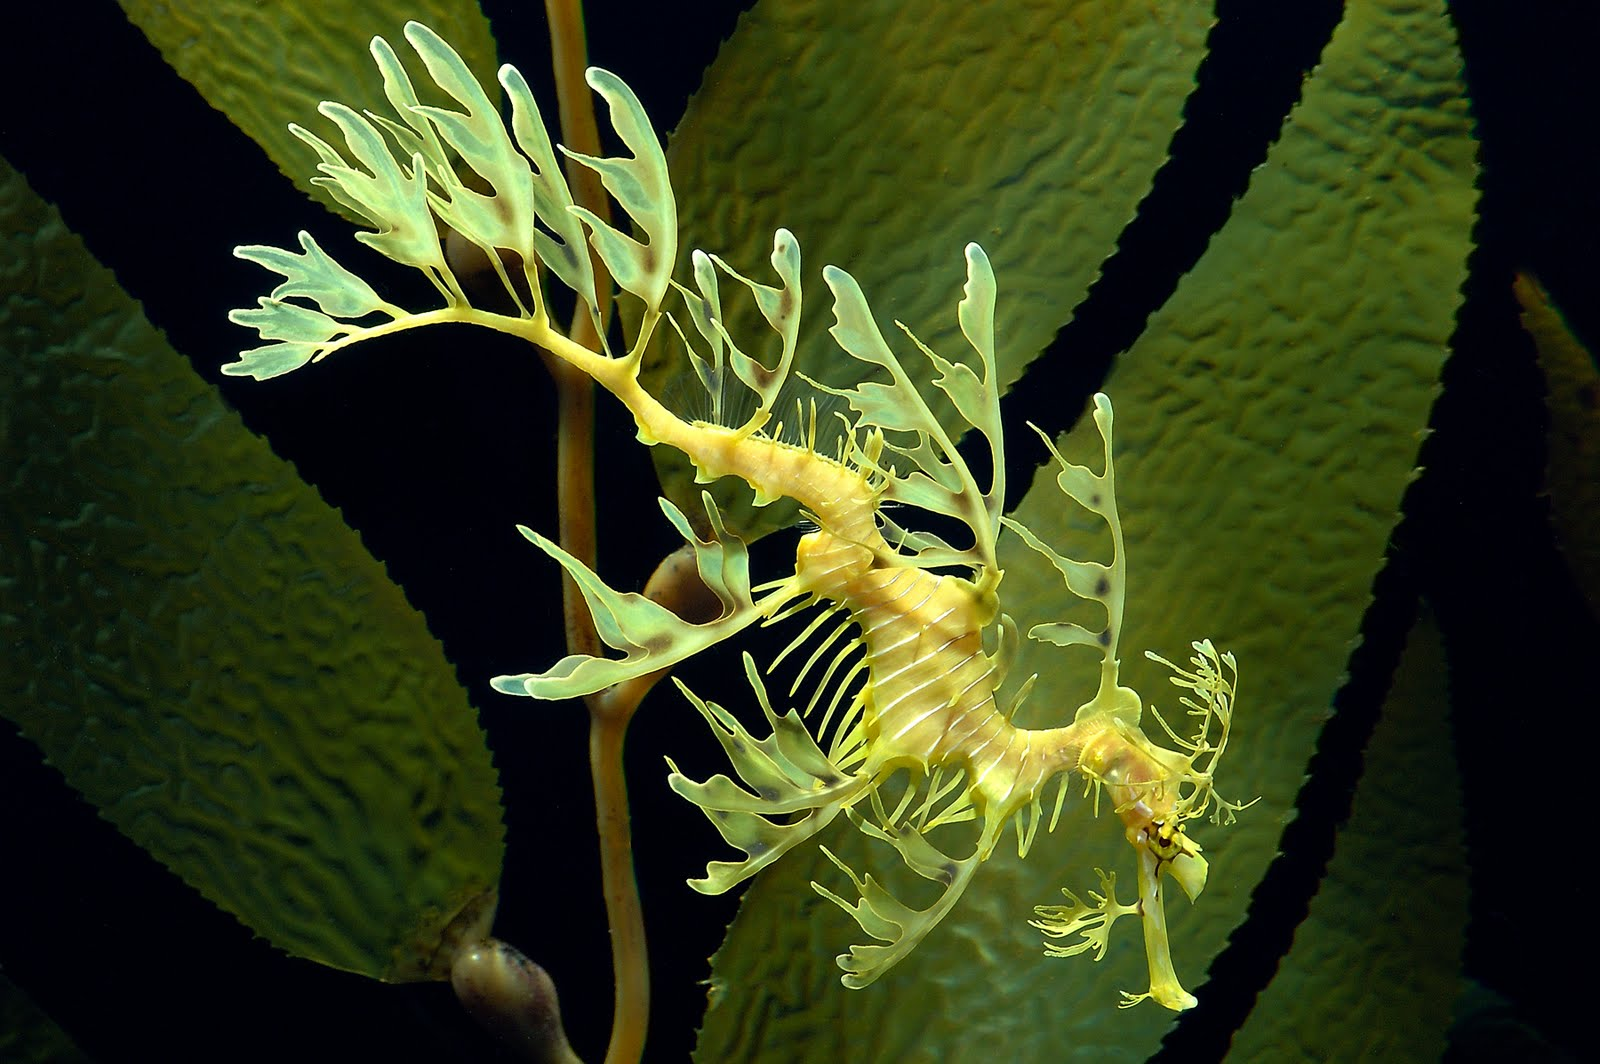 leafy sea dragon Find the perfect leafy sea dragon stock photos and editorial news pictures from  getty images download premium images you can't get anywhere else.